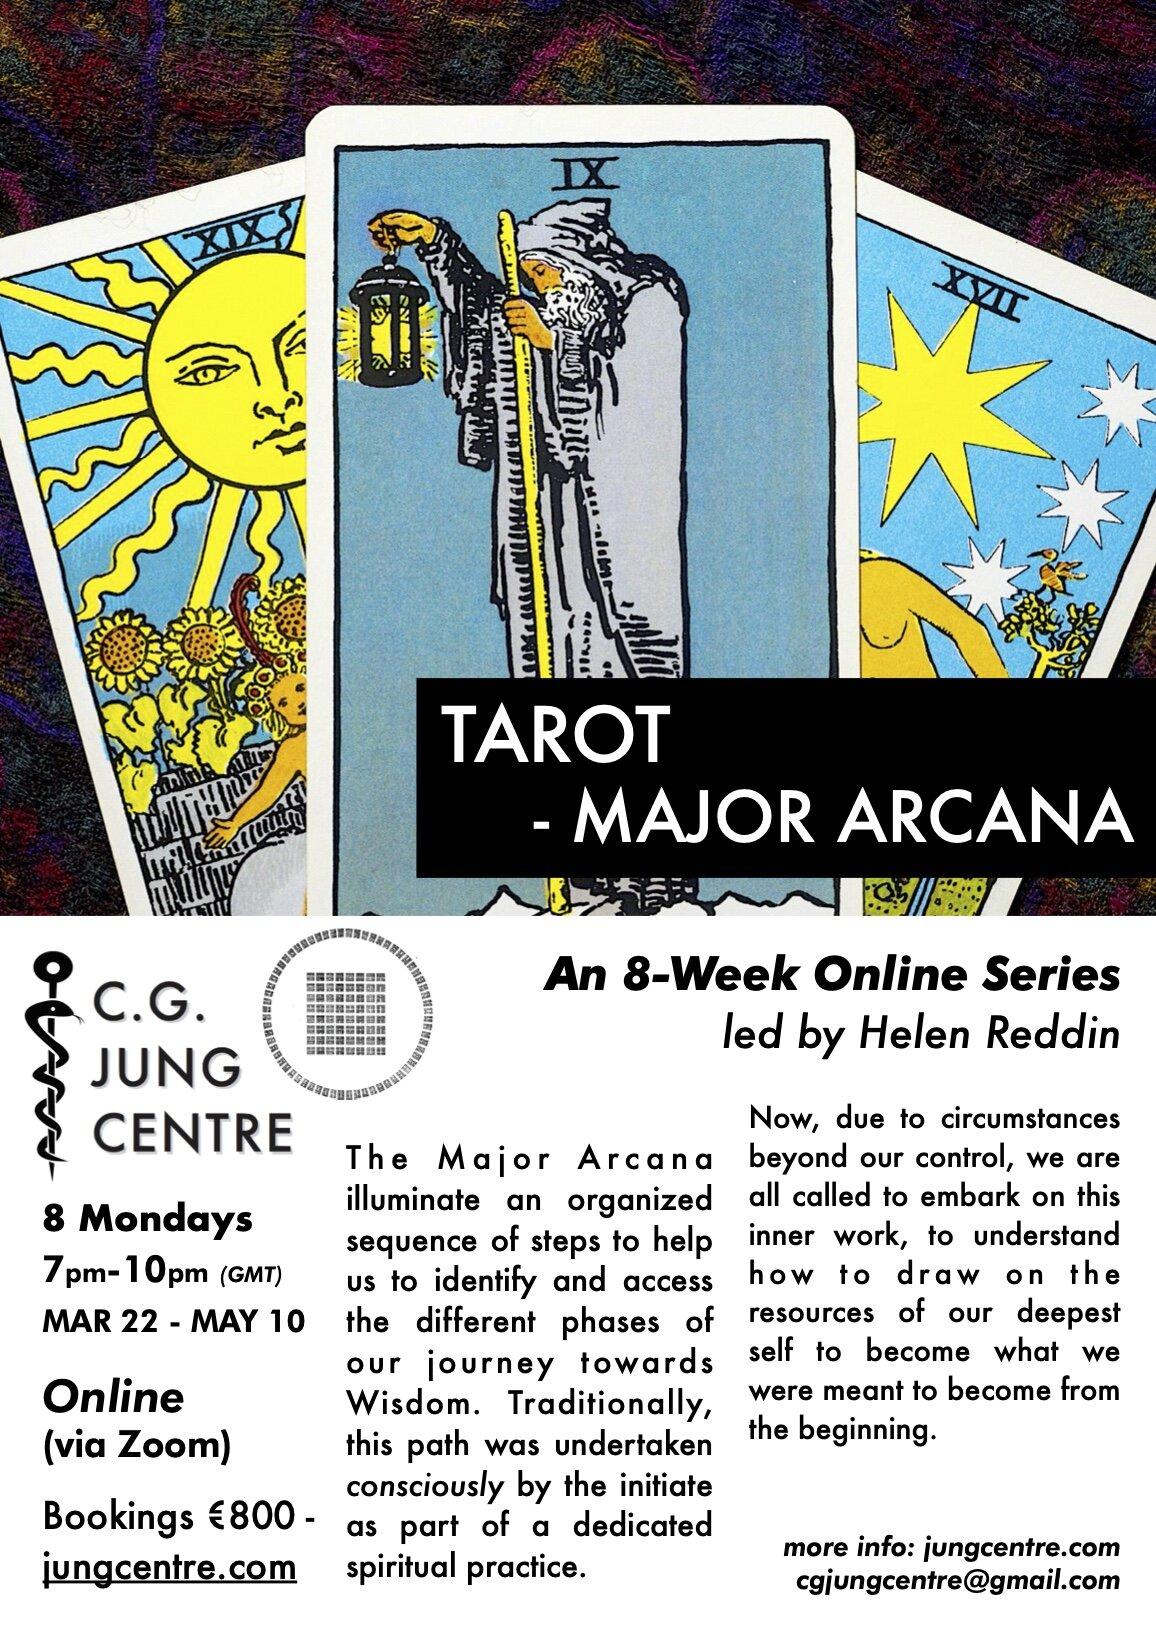 Https Www Jungcentre Com Tarot Major Arcana Online Series